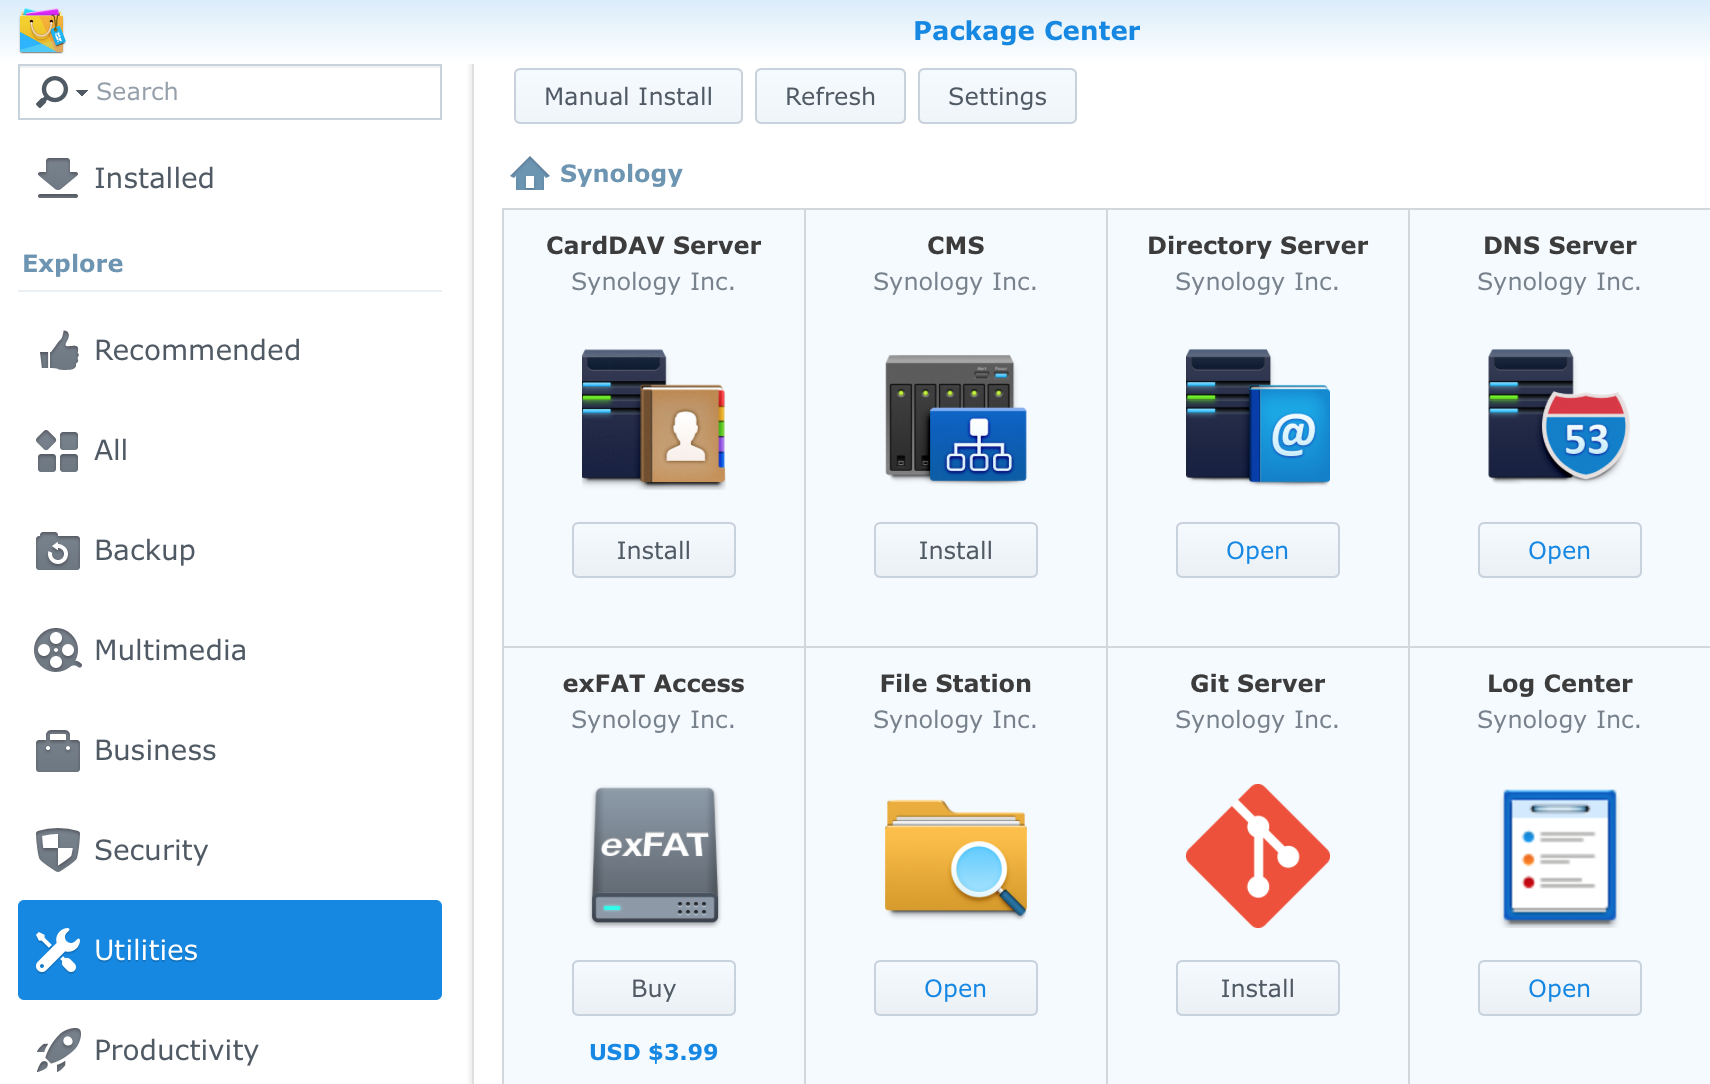 Rob Pickering: Configuring Synology for Forward and Reverse Internal